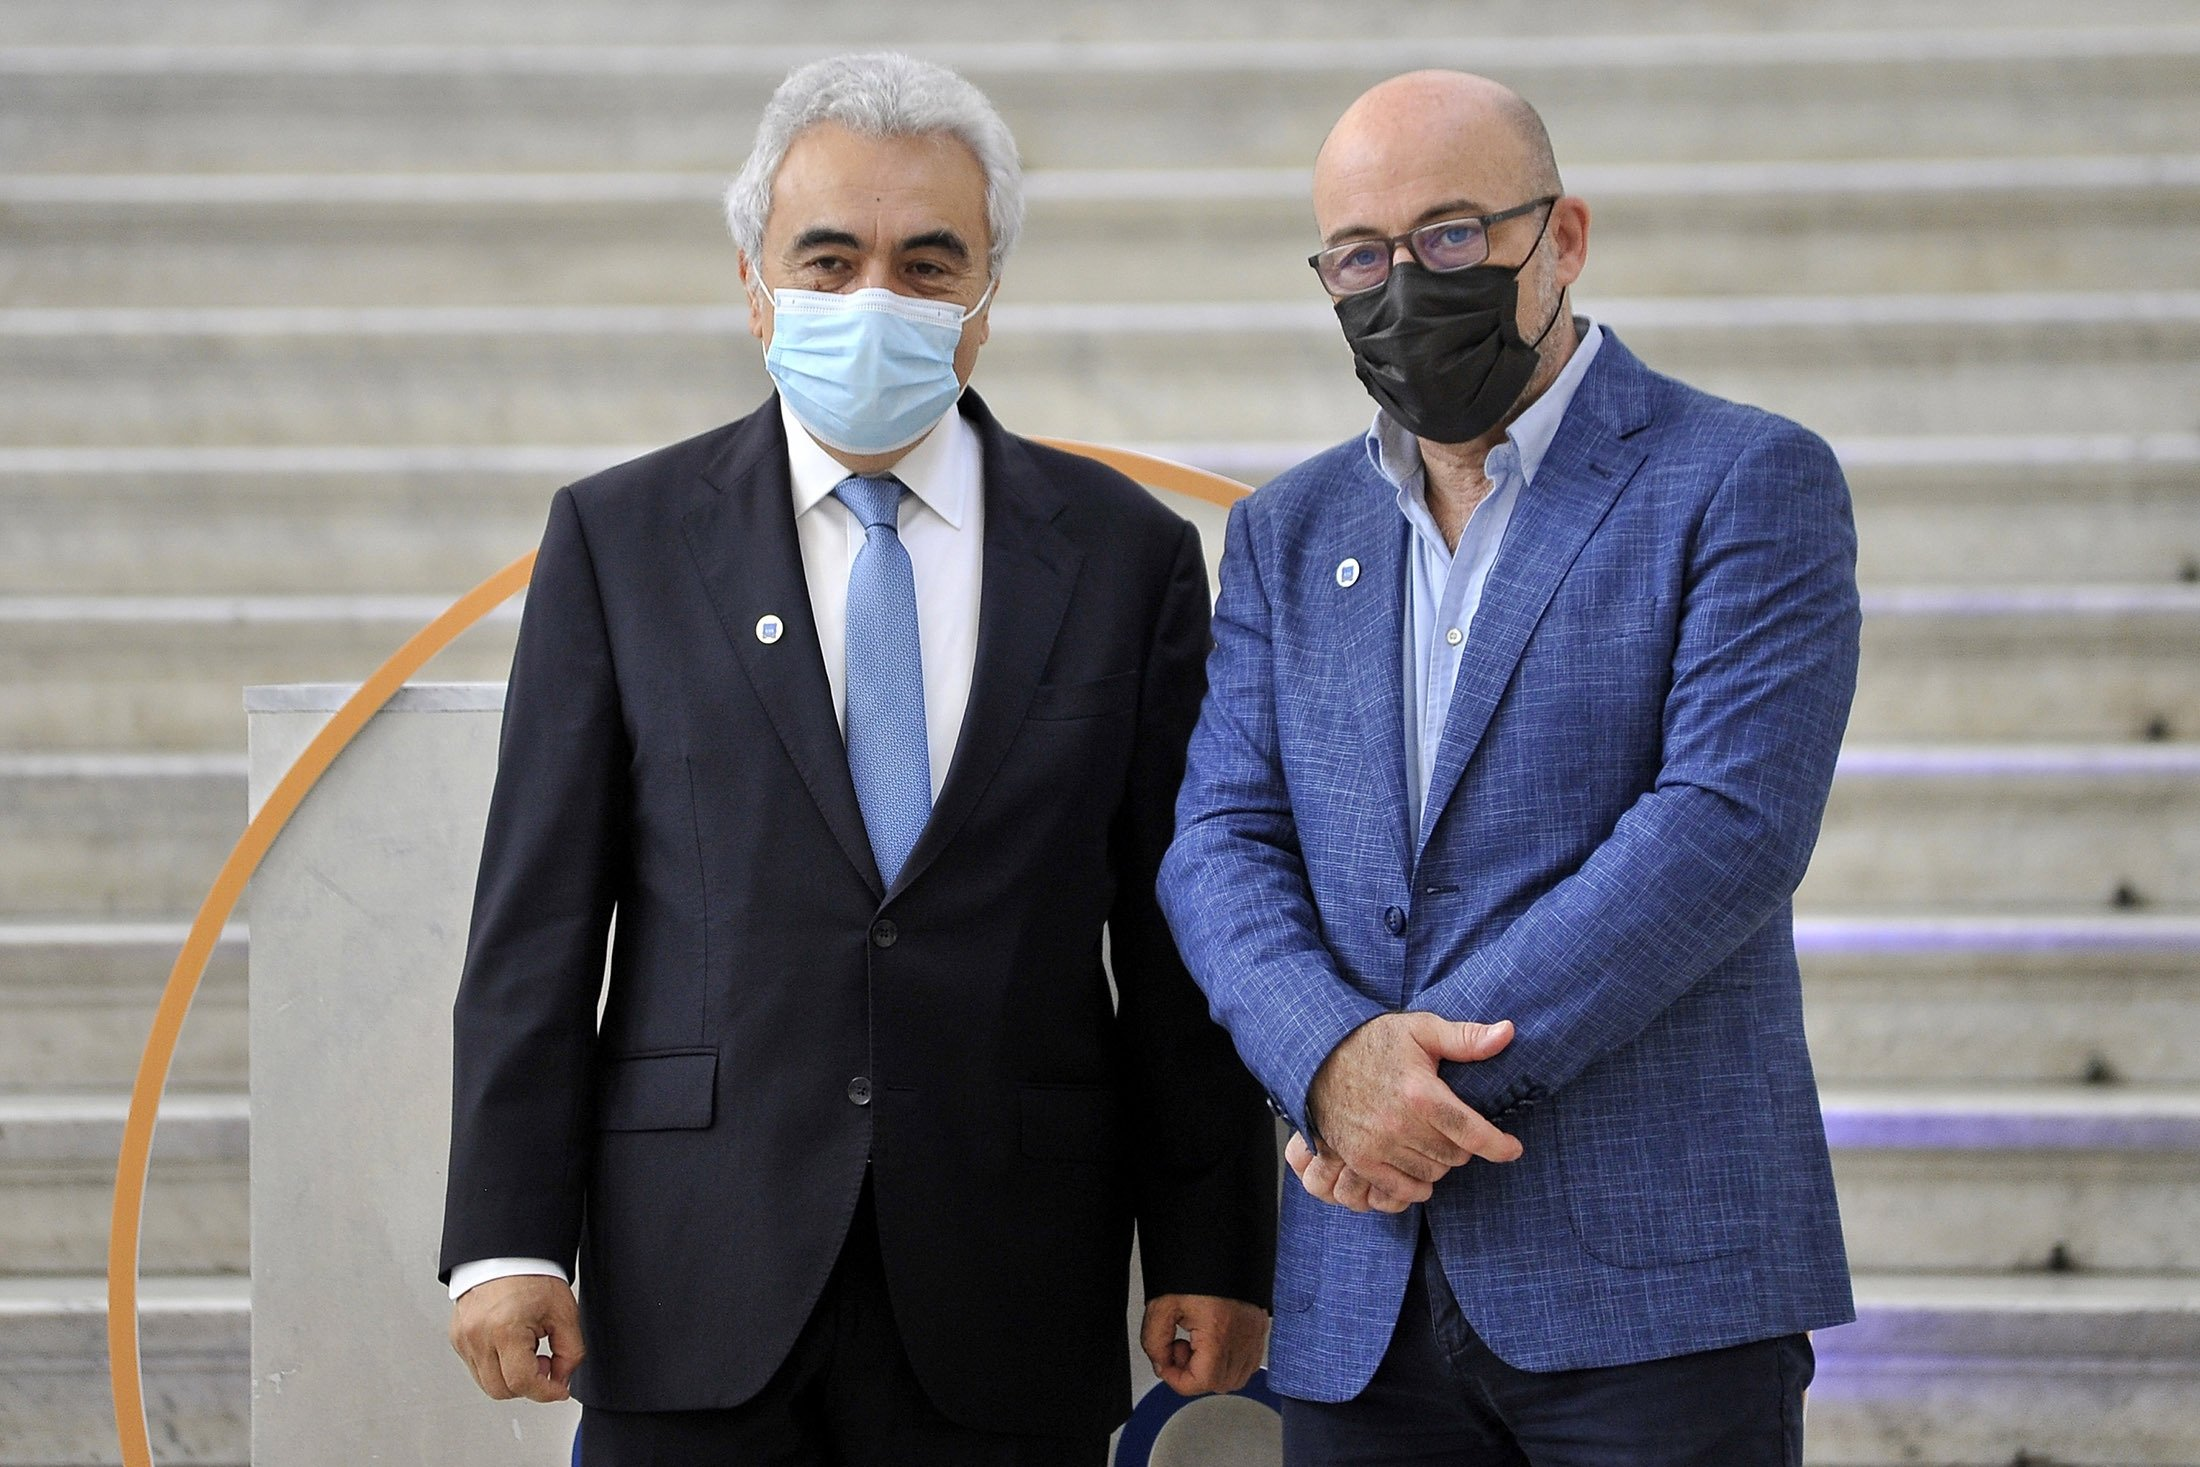 Executive Director of the International Energy Agency Fatih Birol, during the meeting of the G-20 environment ministers at the city of Naples, Italy, July 23, 2021. (Getty Images Photo)